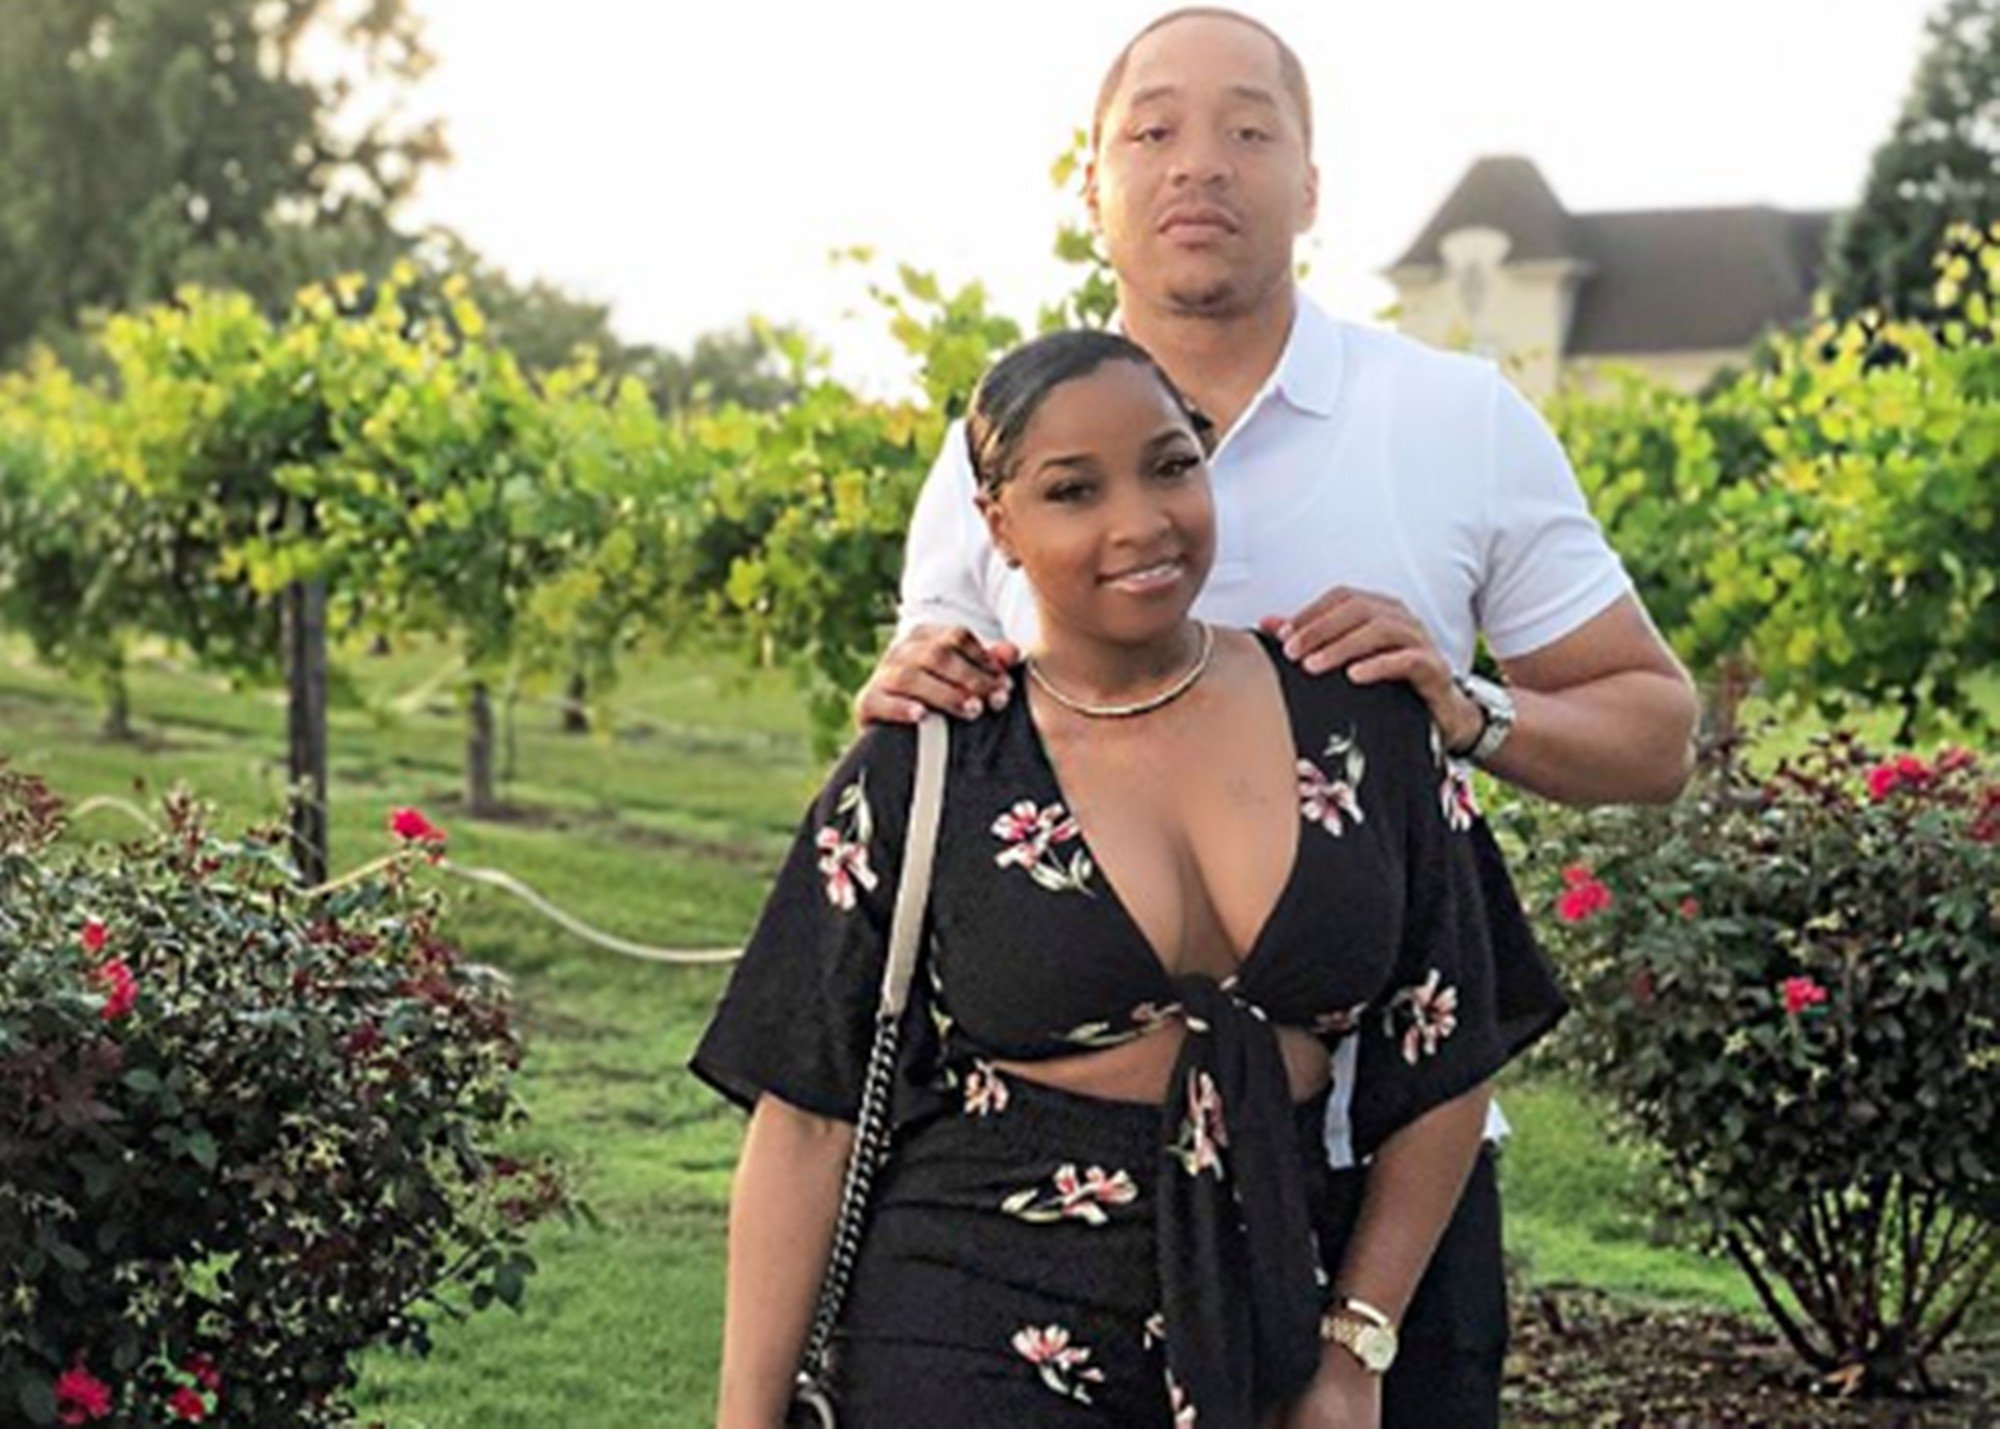 Toya Johnson Offers Workout Tips To Fans - Check Out The Clips And Her Message